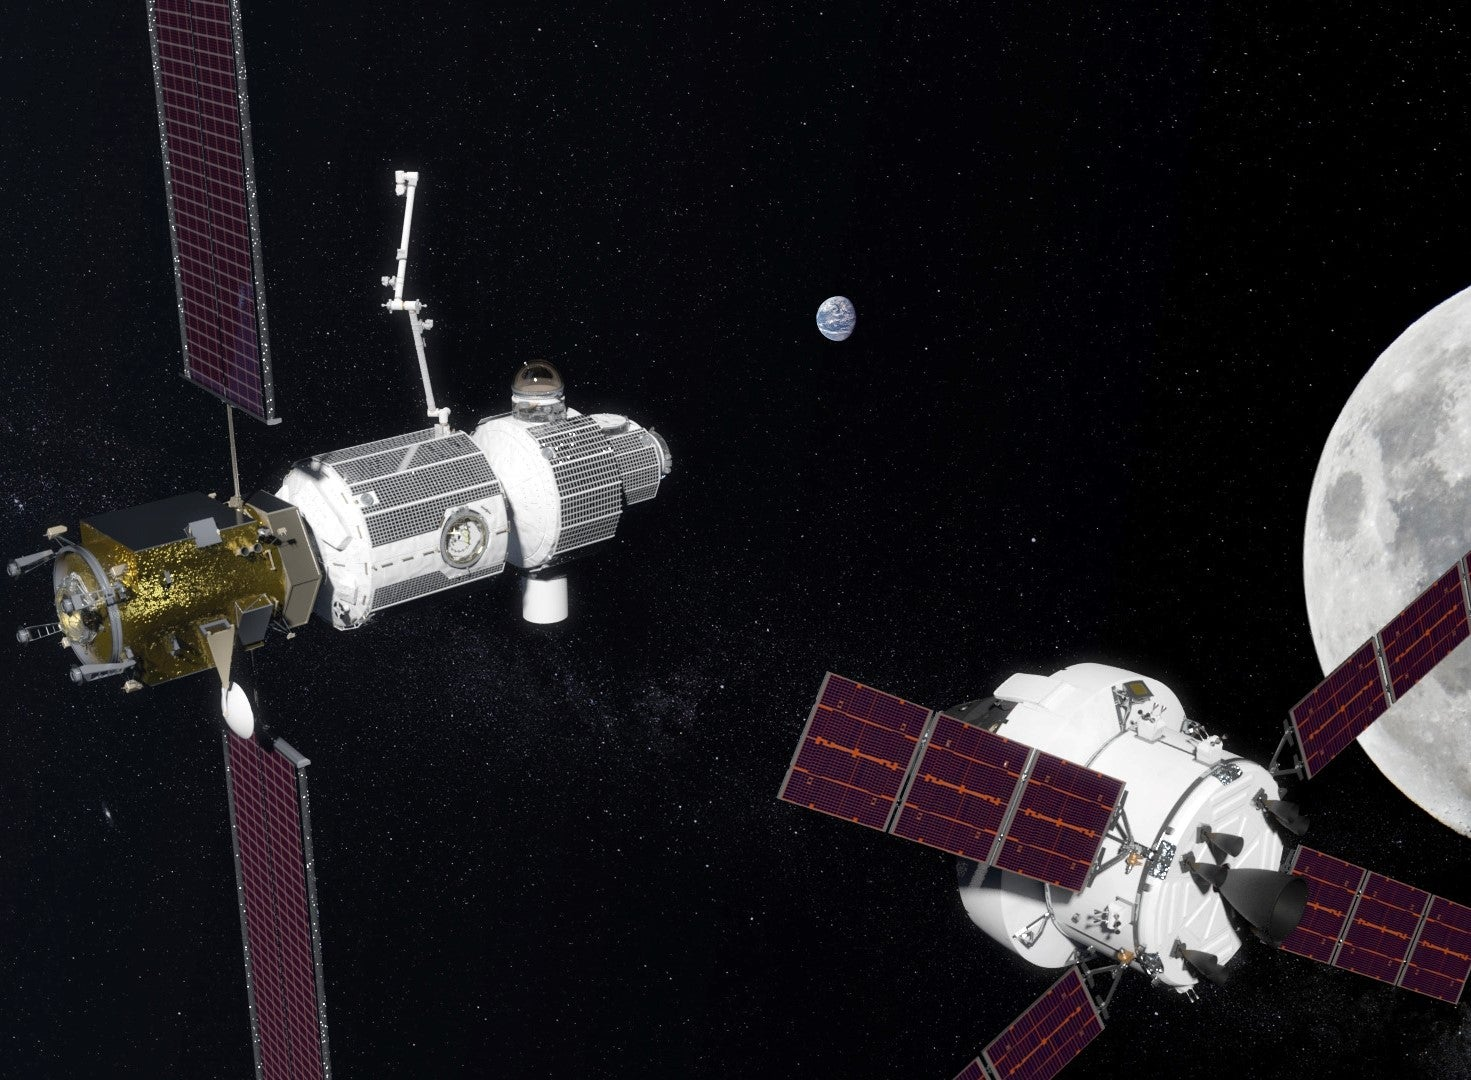 NASA is teaming up with Russia to put a new space station near the moon. Here's why.